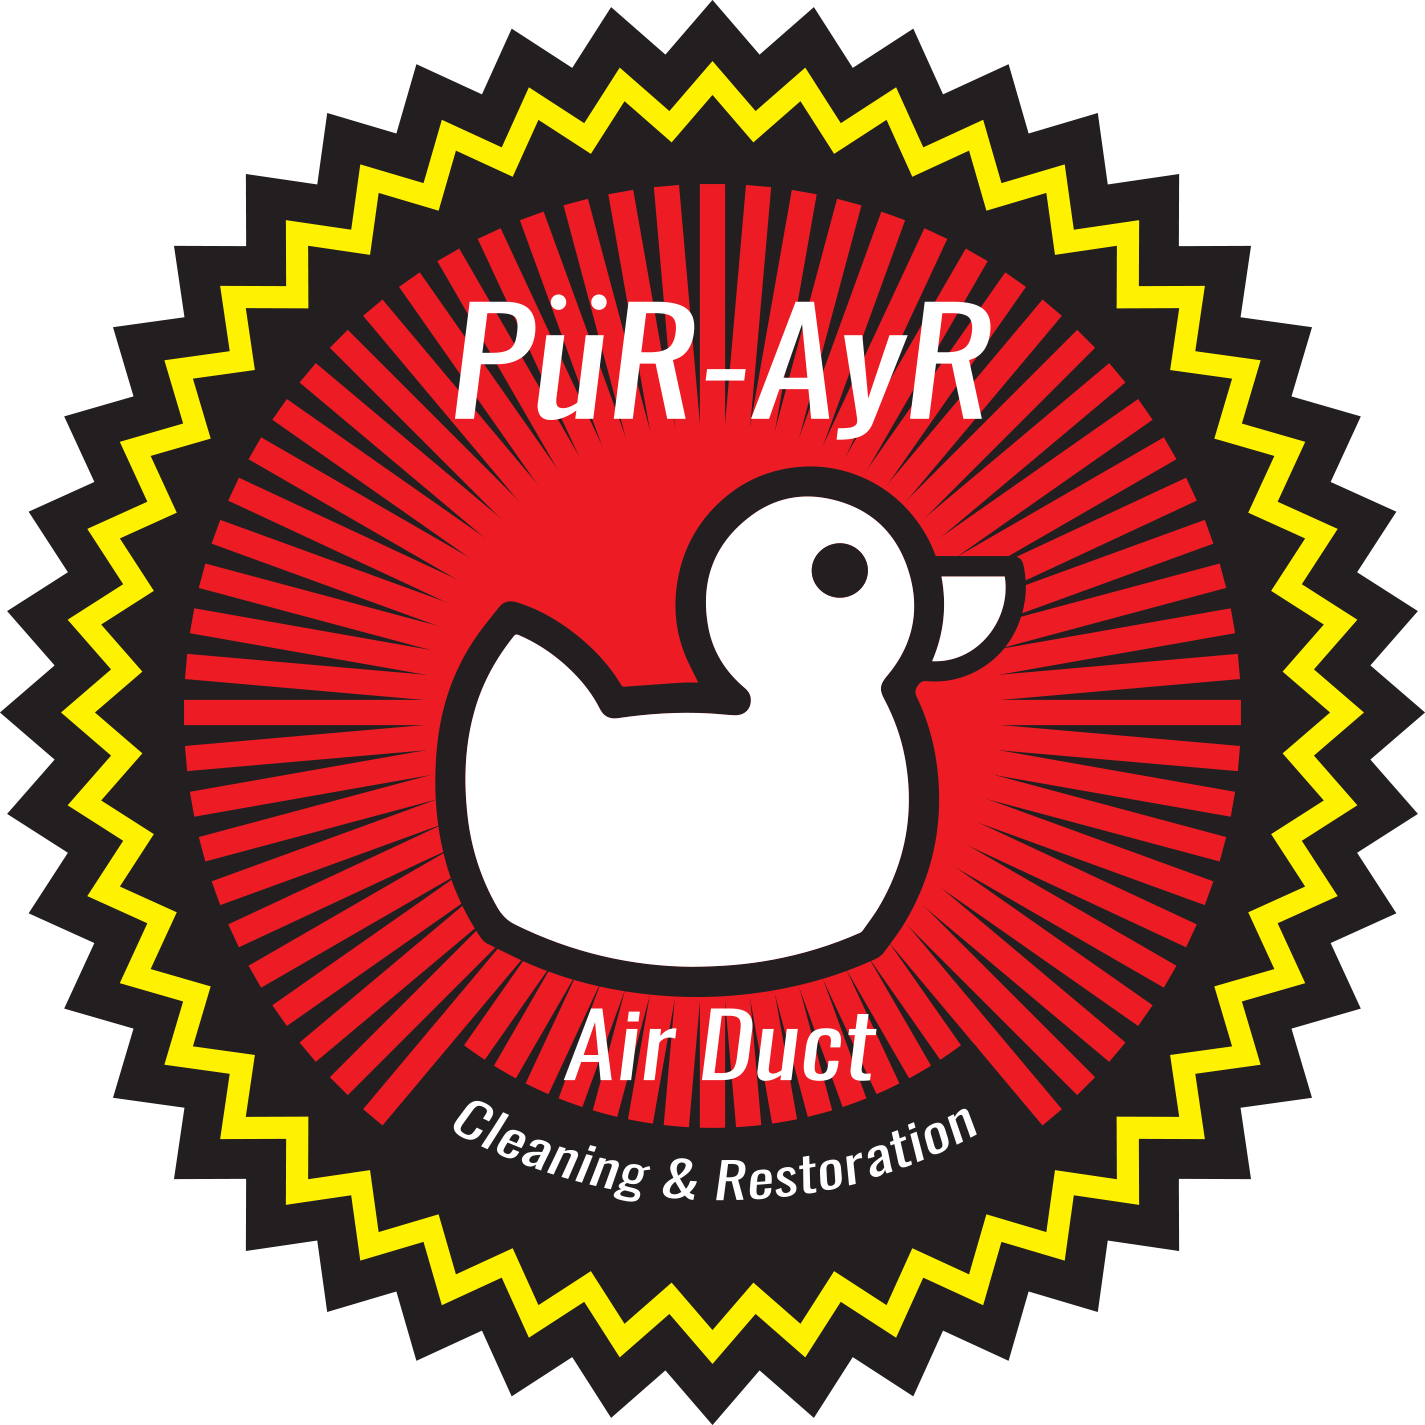 PüR-AyR (Air Duct Cleaning and Restoration)